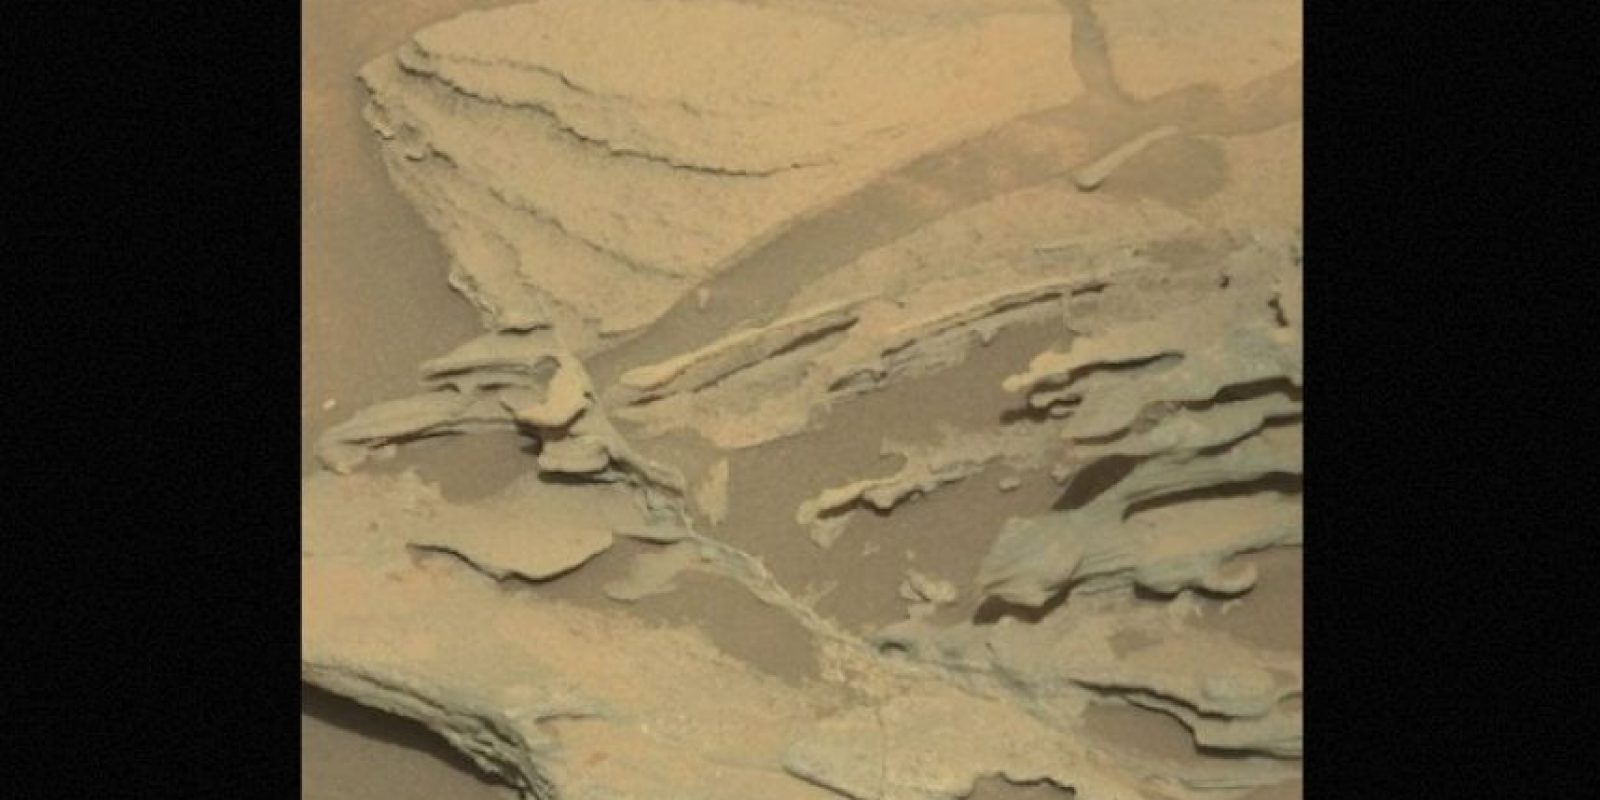 Foto: http://mars.jpl.nasa.gov/msl/multimedia/raw/?rawid=1087MR0047790080600495E01_DXXX&s=1087.58599413143